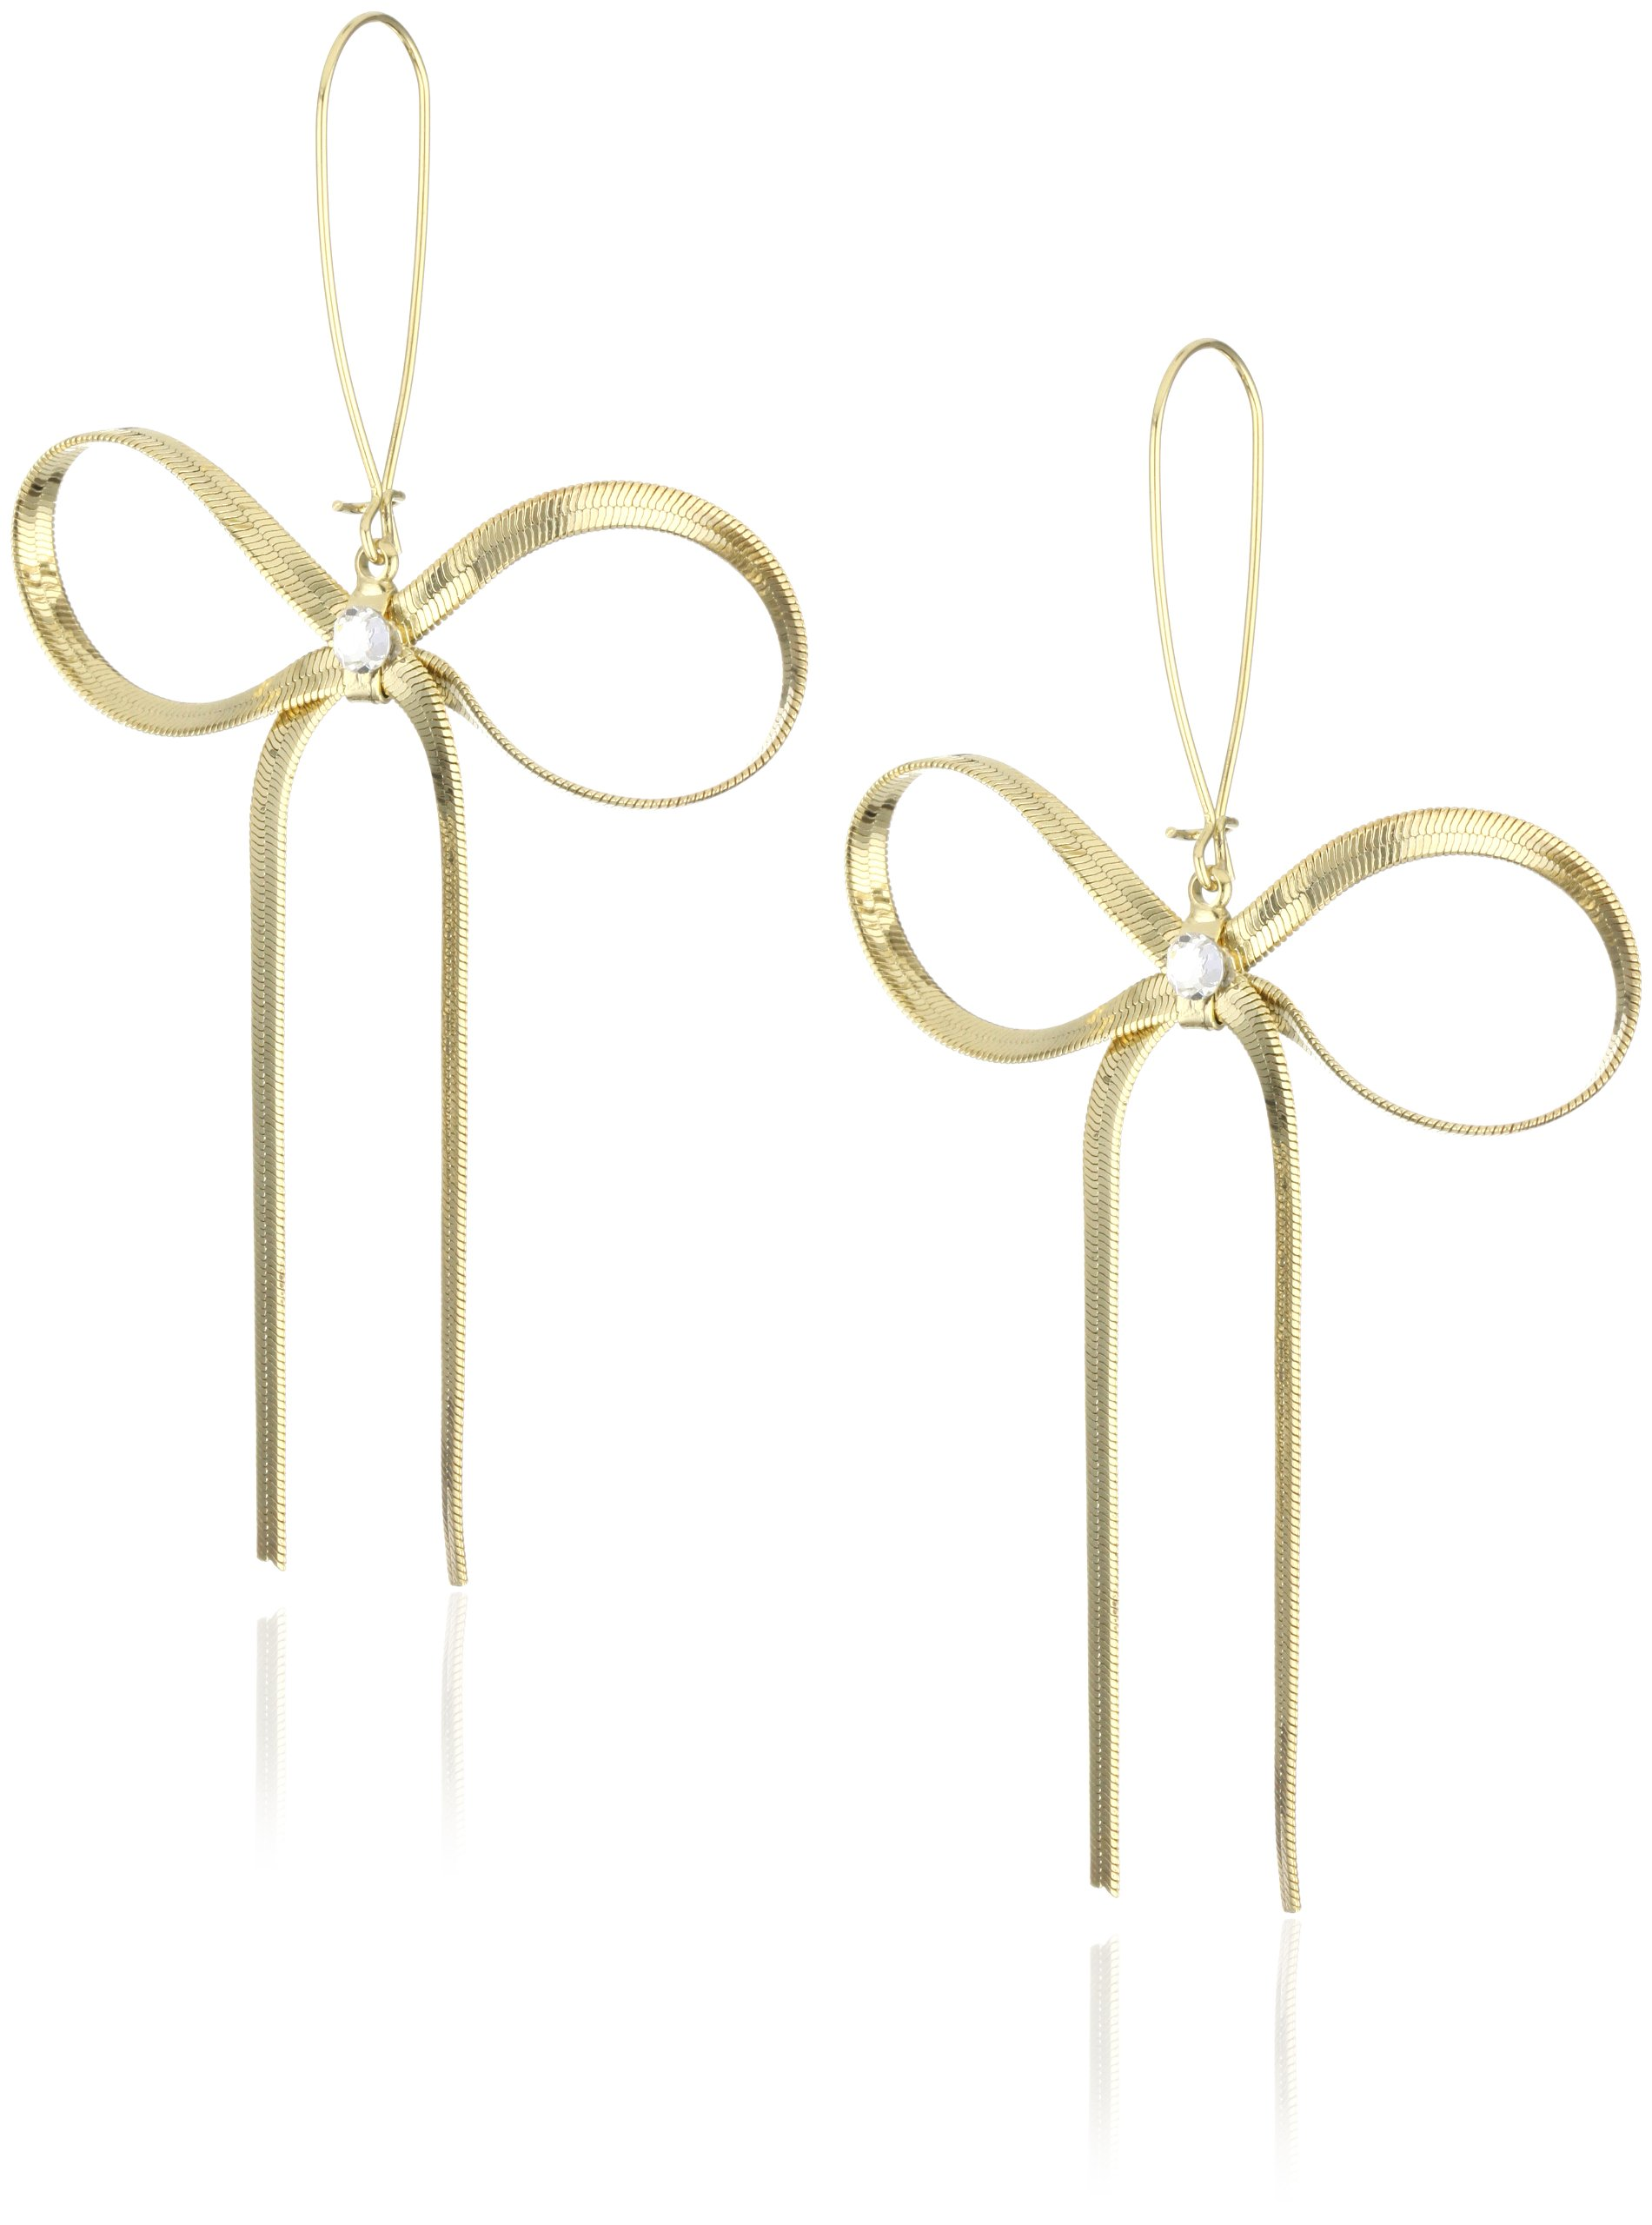 Betsey Johnson Large Gold Textured Bow Drop Earrings